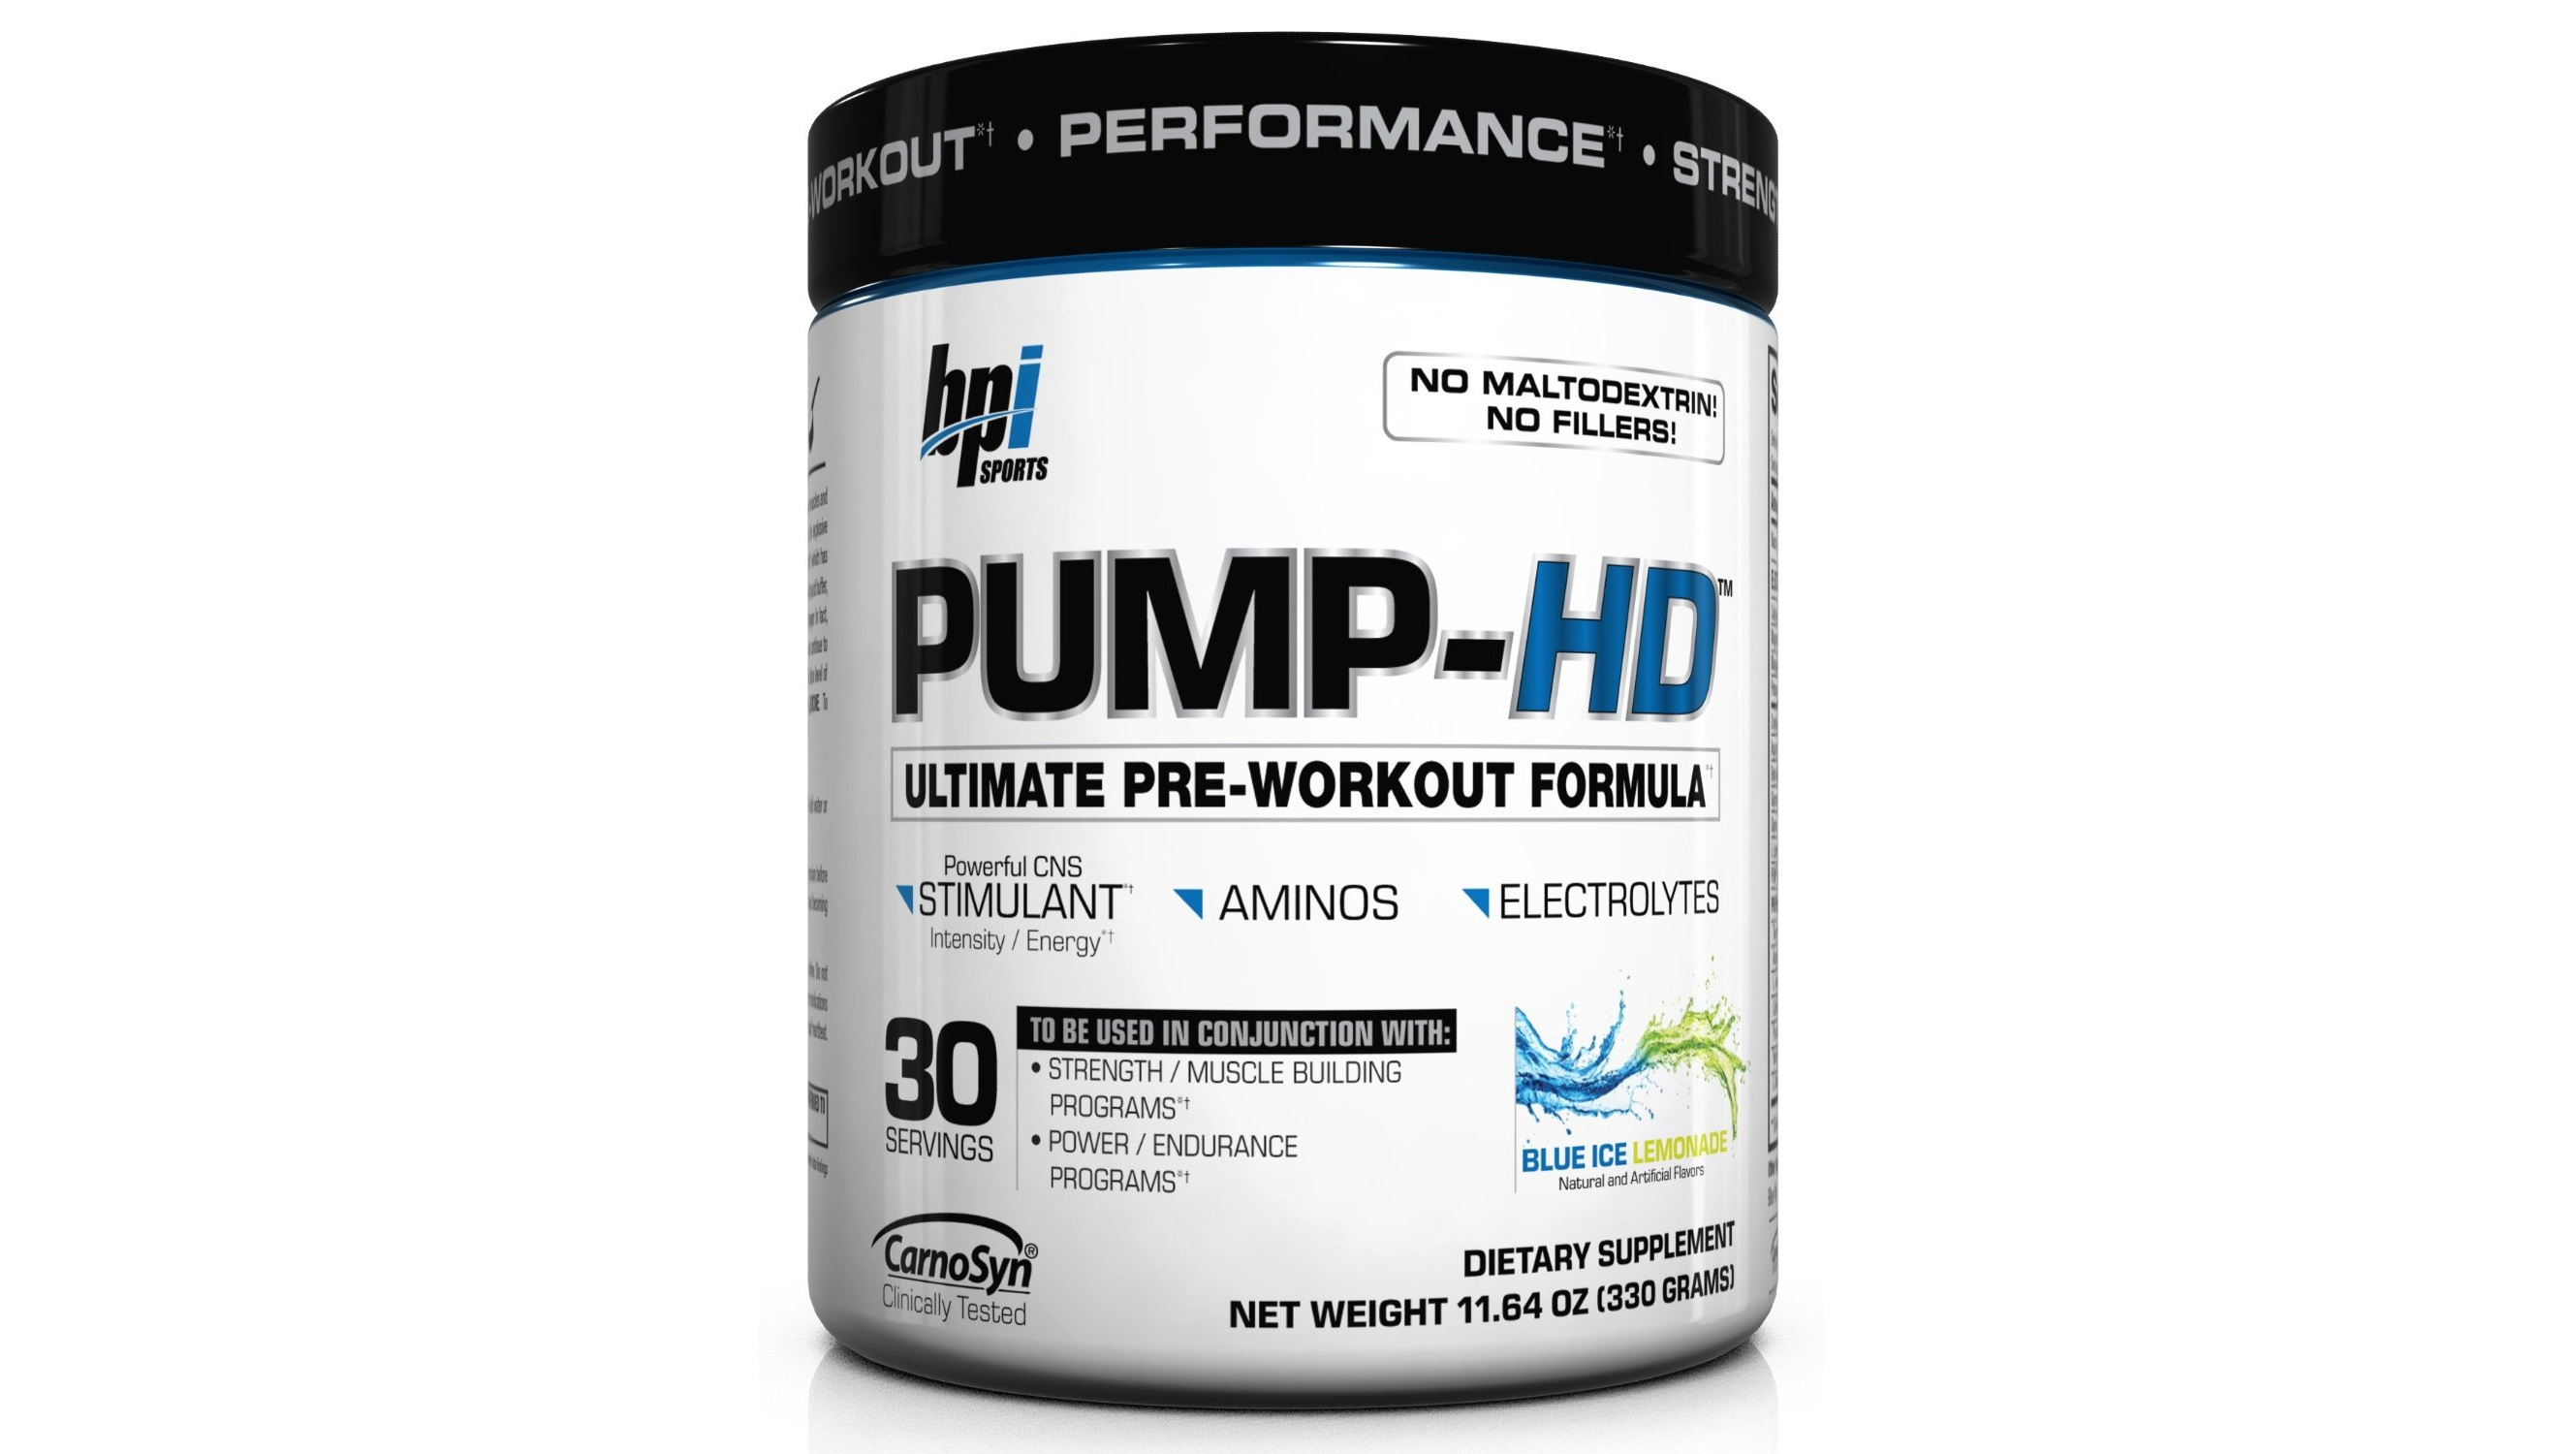 Best Pre Workout For Pump